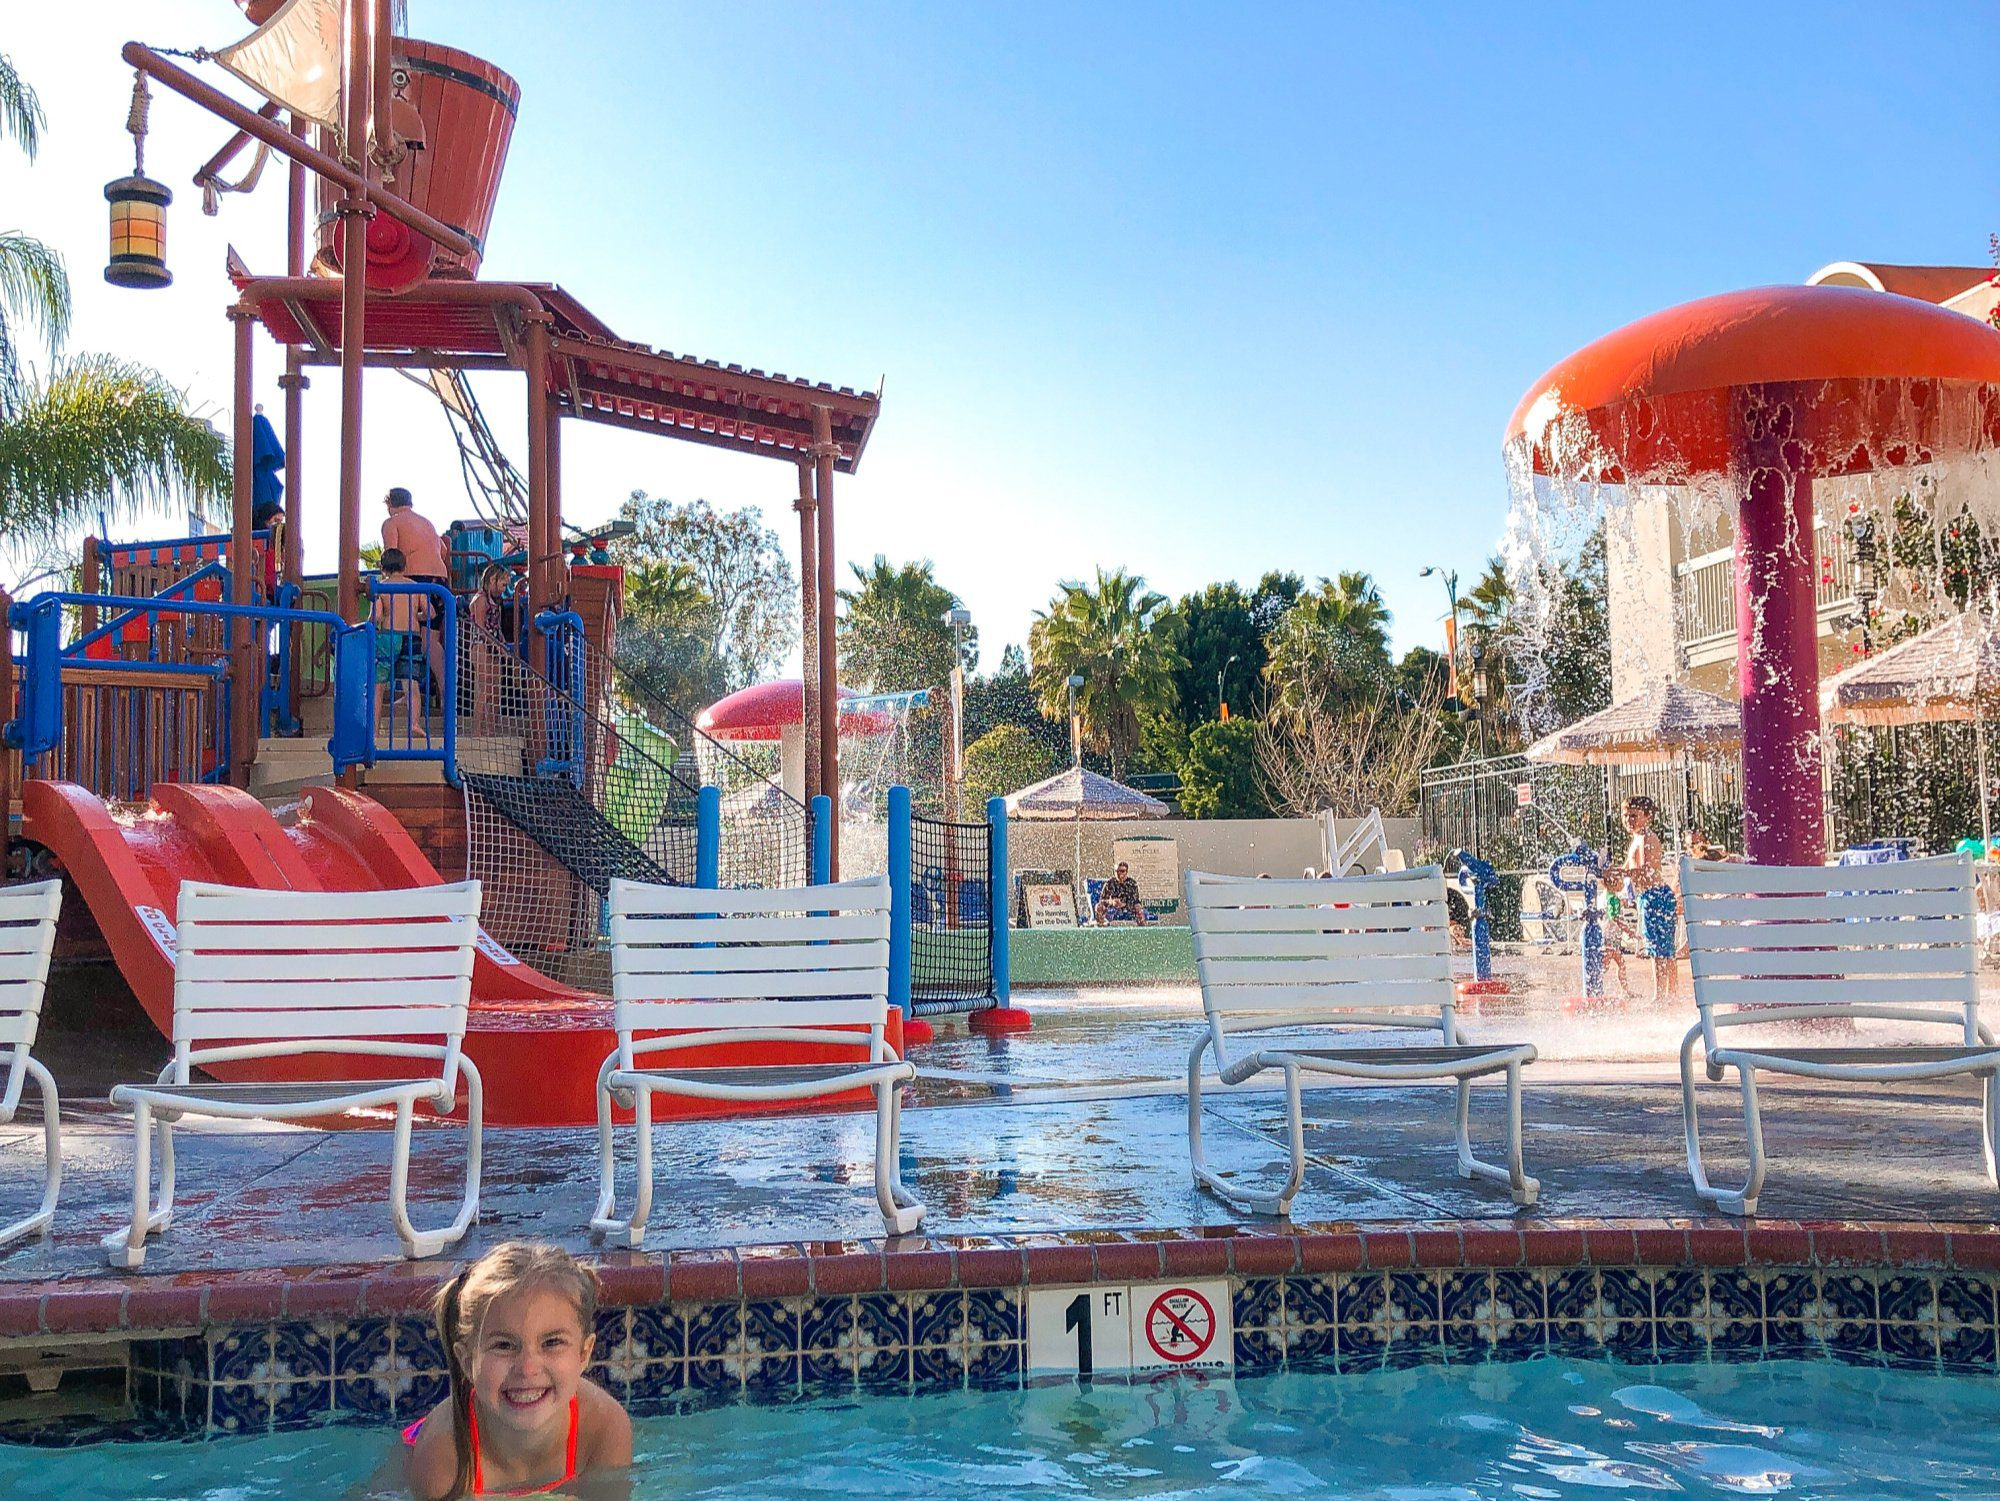 Looking for a family-friendly place to stay near Disneyland? The HoJo Anaheim has you covered with awesome kids' suites, free parking, and even a waterpark!